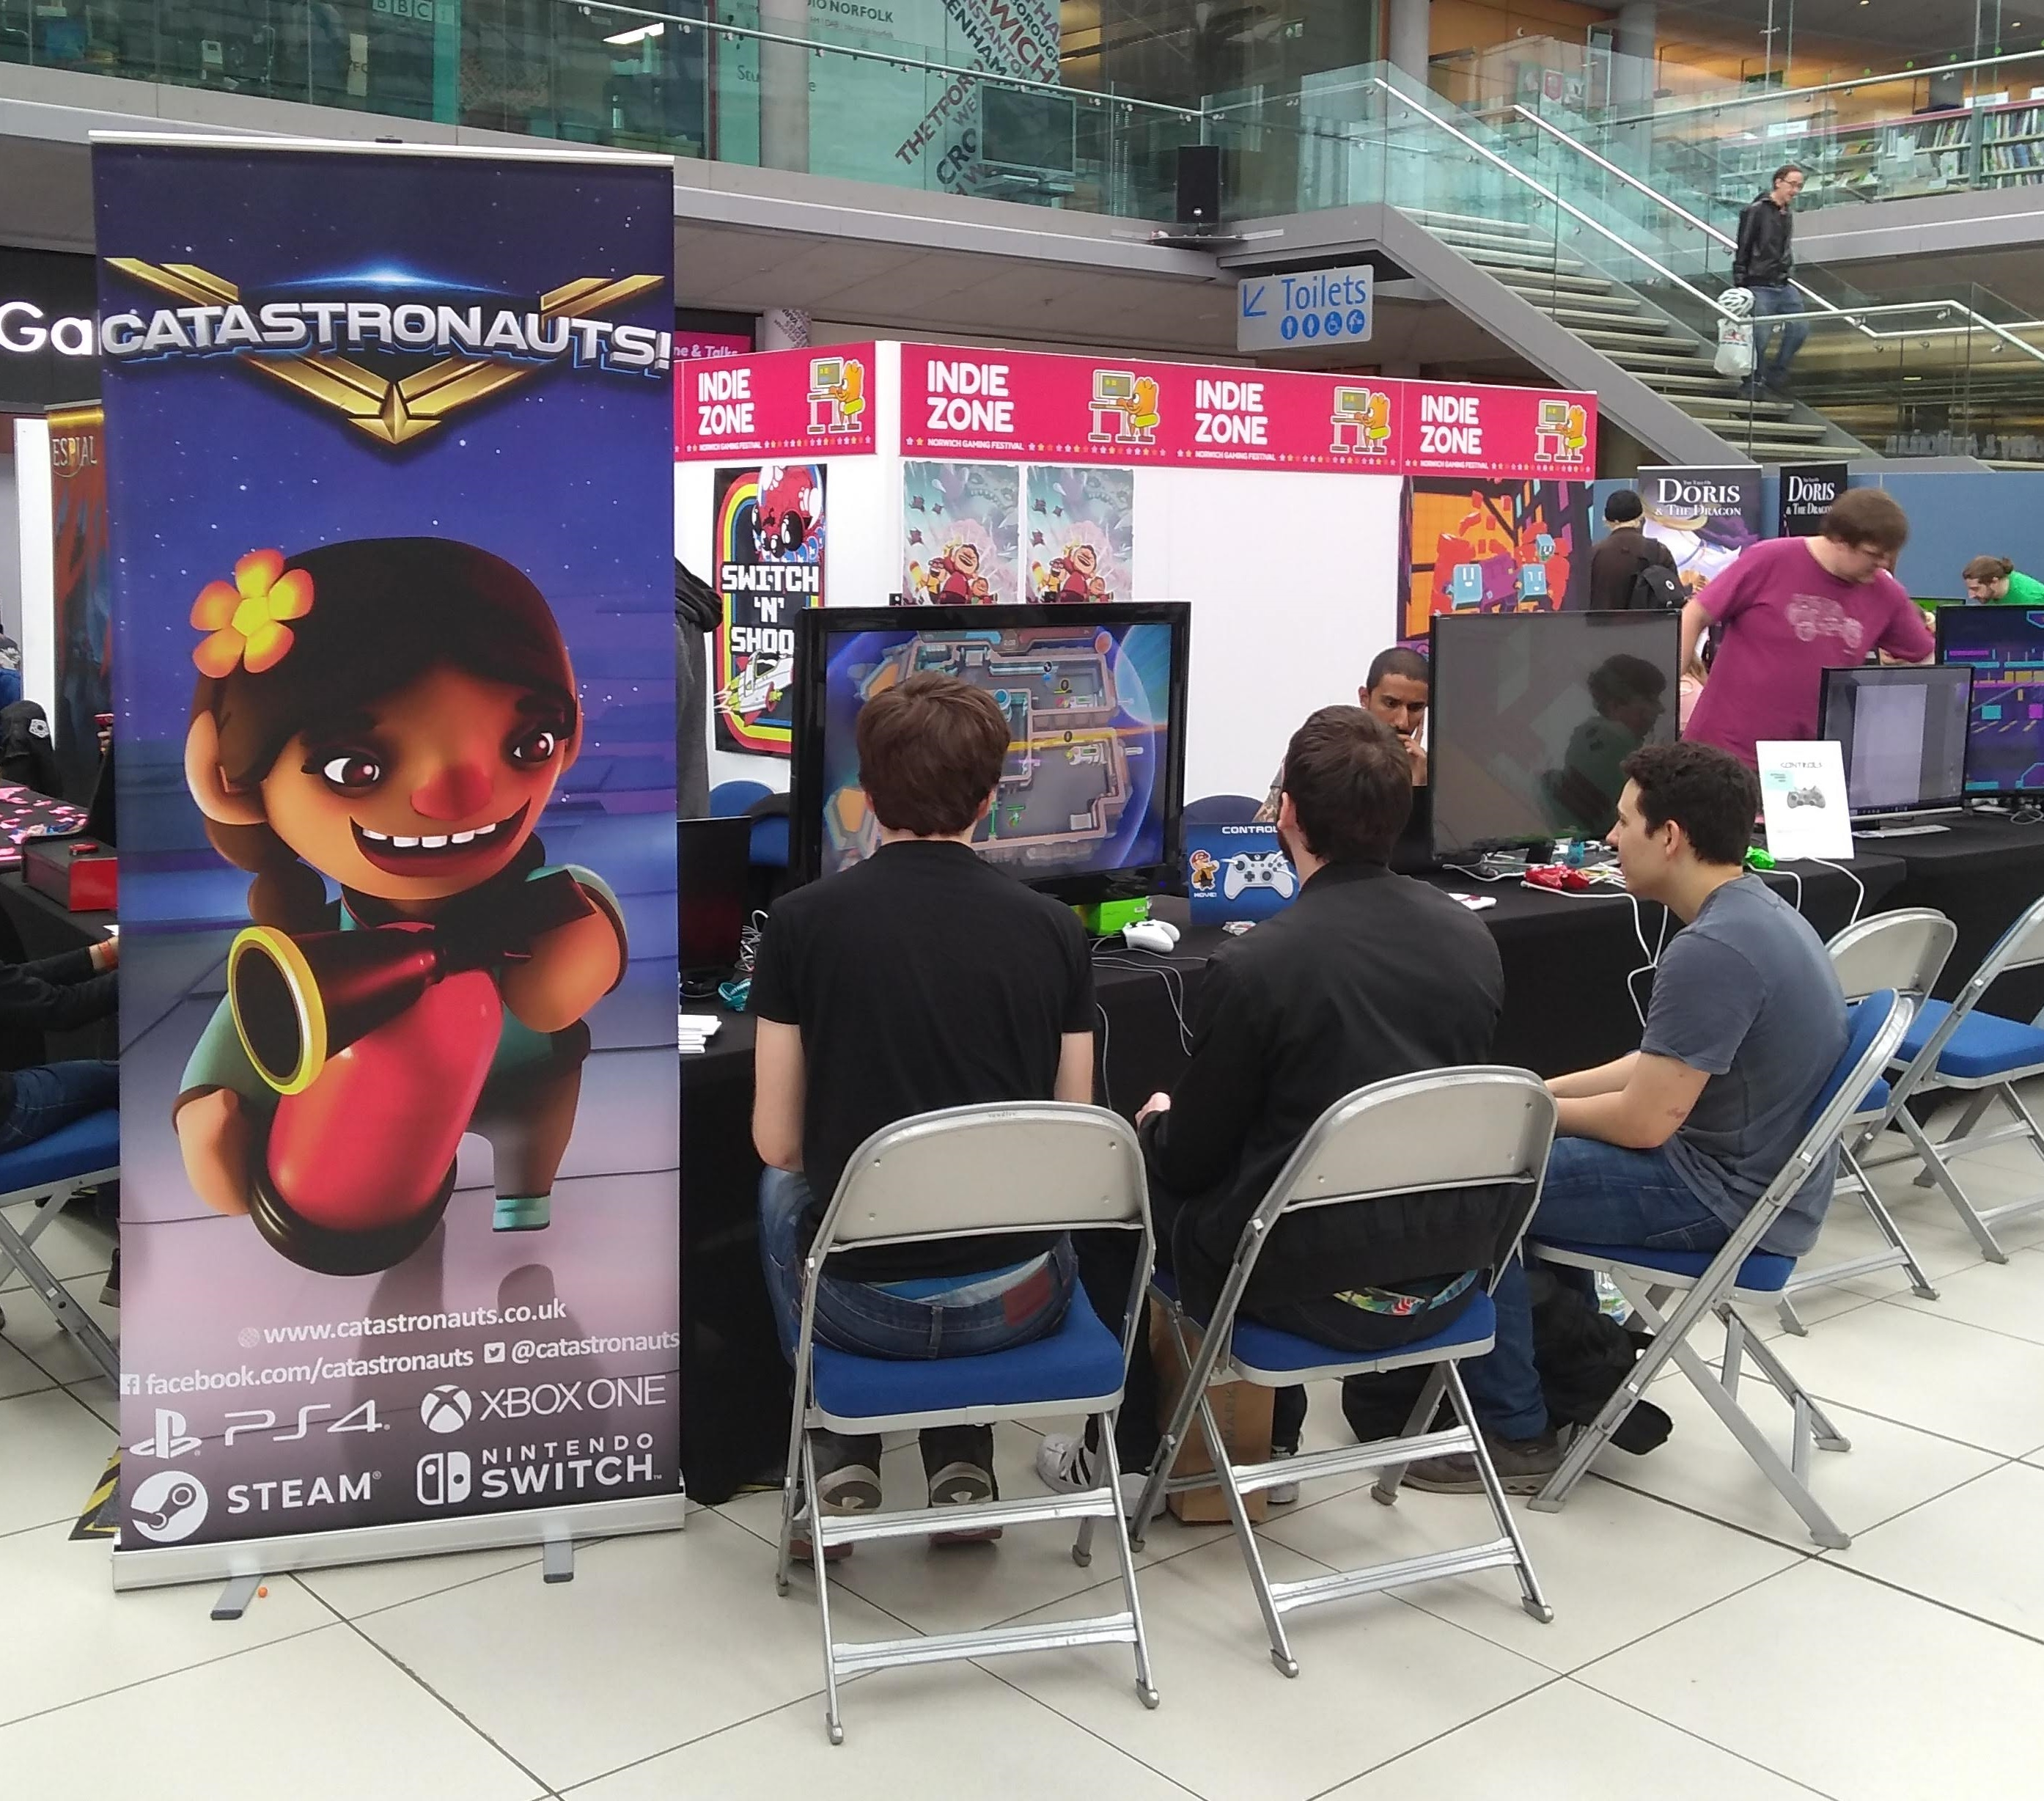 People playing Catastronauts